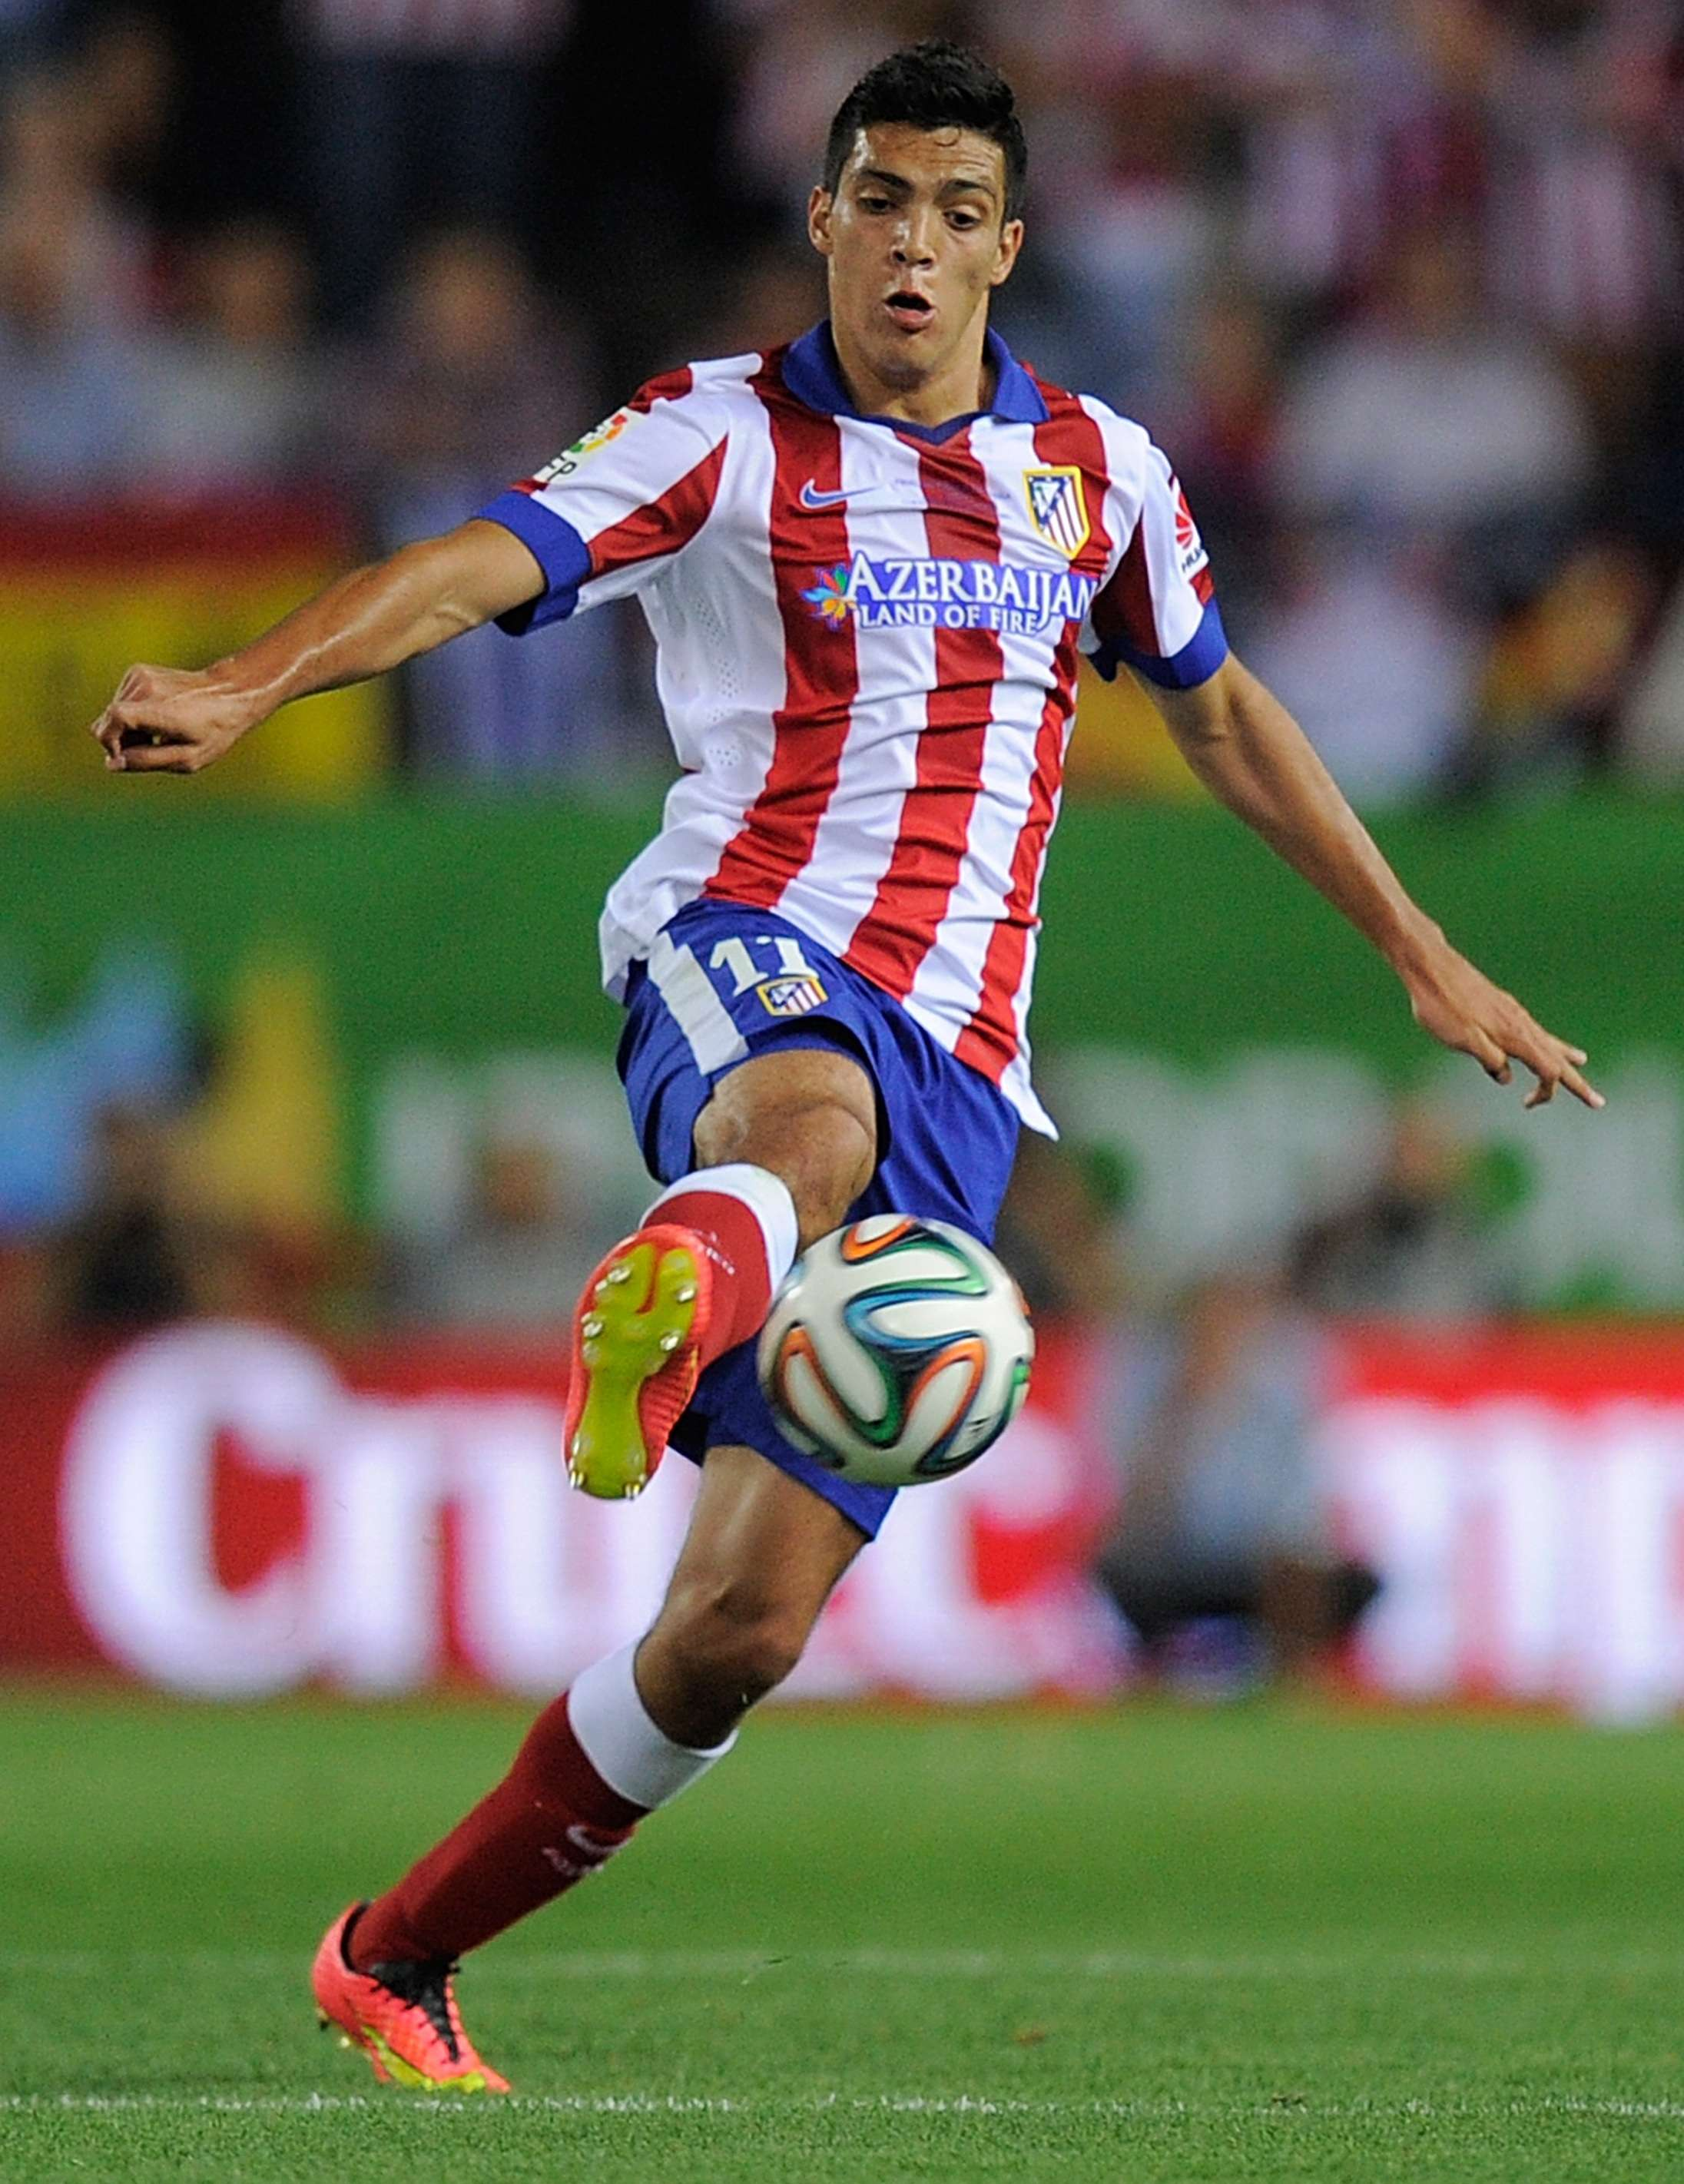 Raúl Jiménez playing for Atletico de Madrid Foto: Getty Images